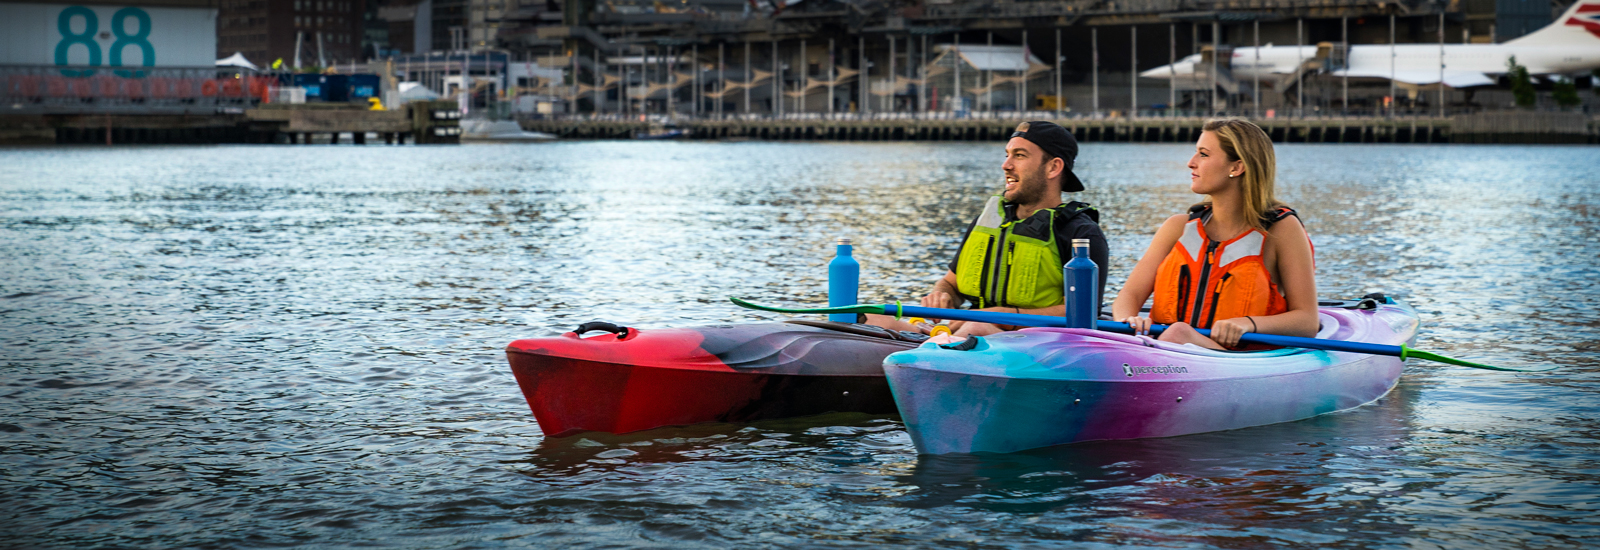 How to Choose a Kayak | Perception Kayaks | USA & Canada